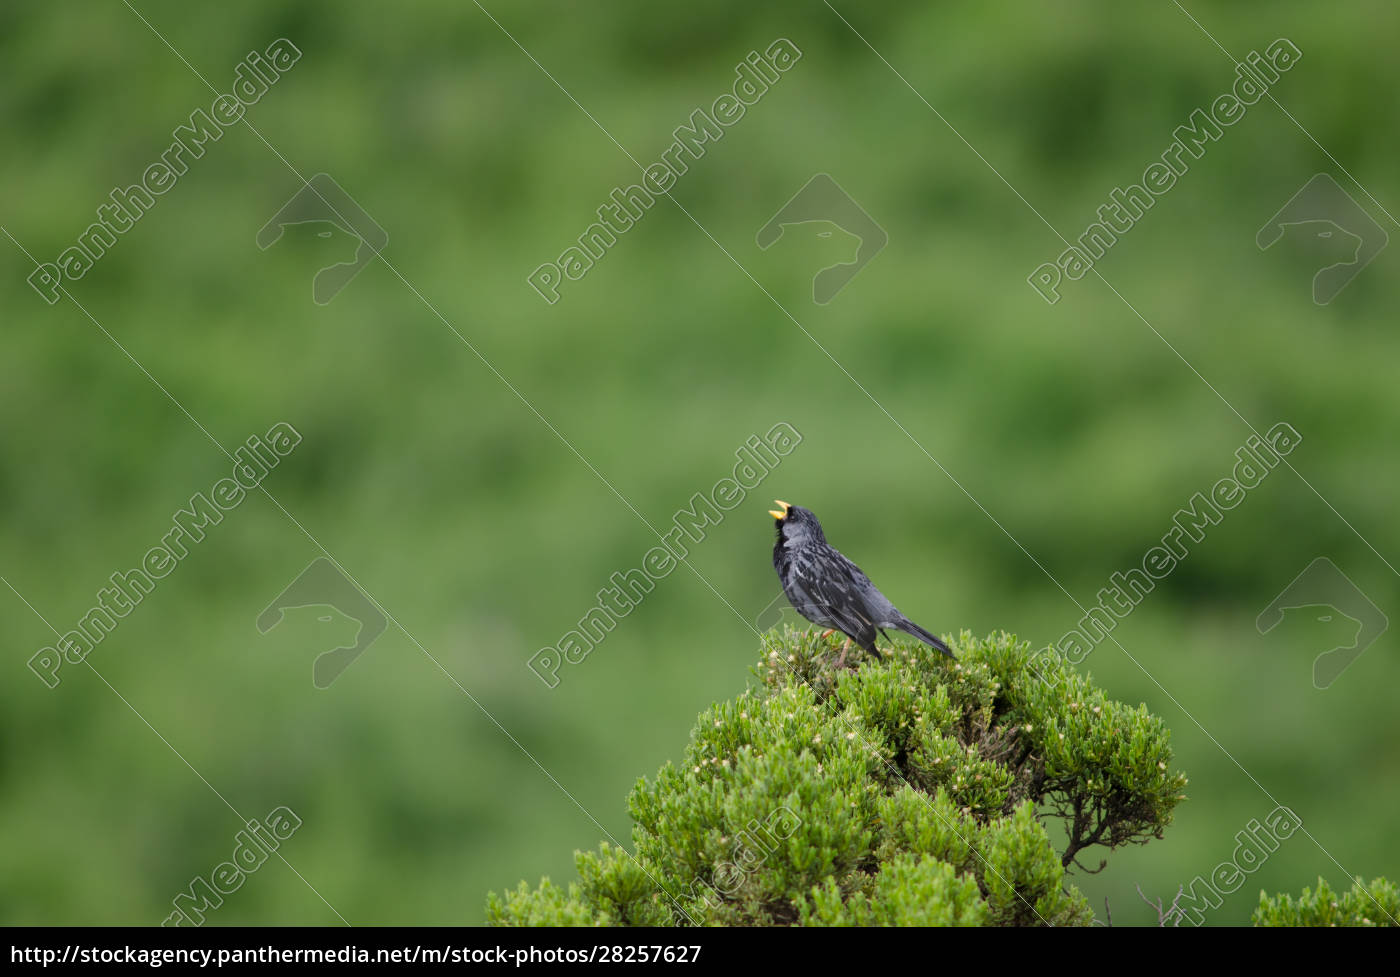 male, band-tailed, sierra, finch, phrygilus, alaudinus - 28257627